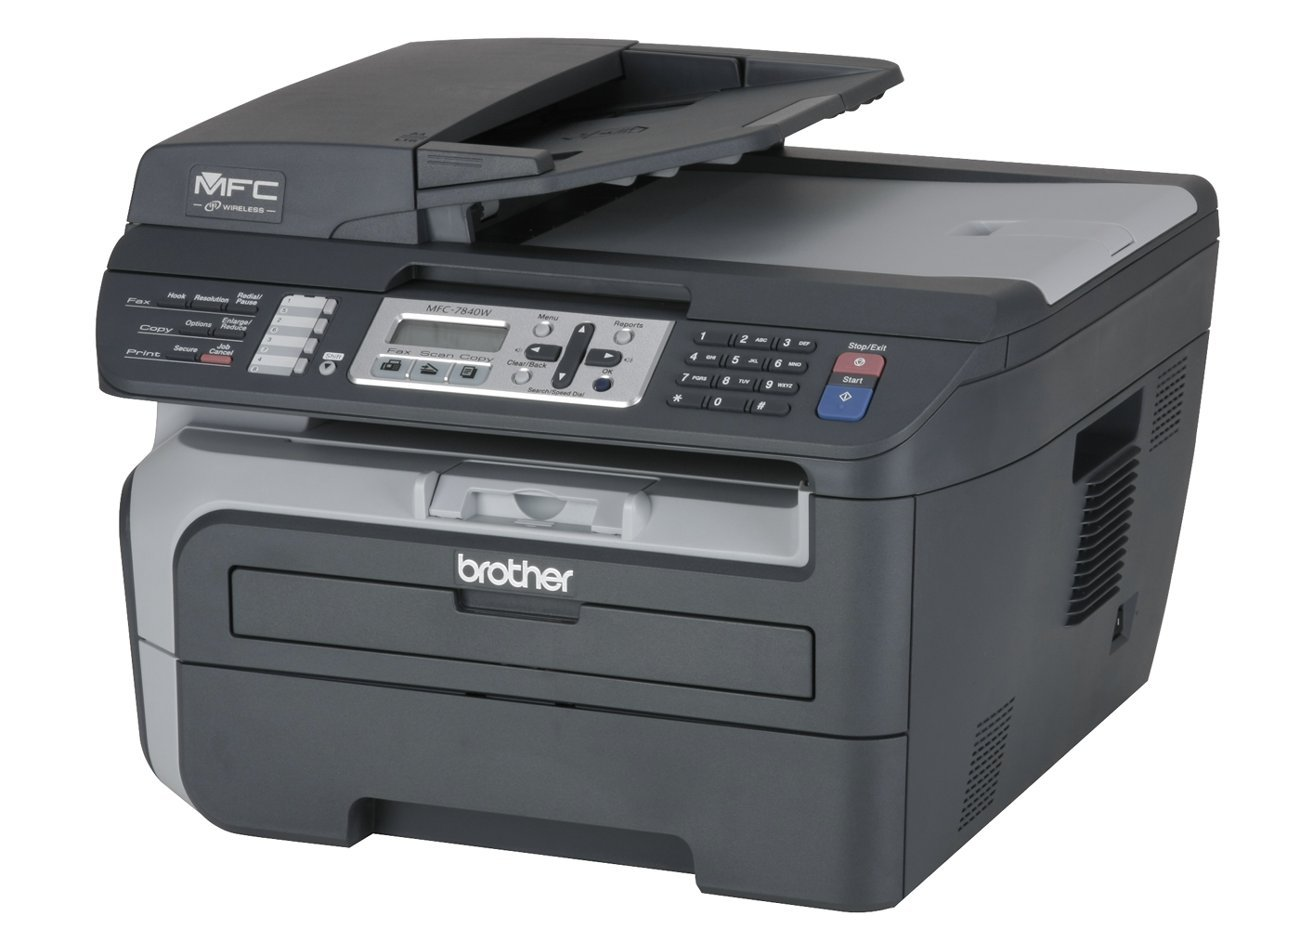 amazon com brother mfc 7840w laser multifunction center electronics rh amazon com Best Brother Printer MFC Brother MFC 7840